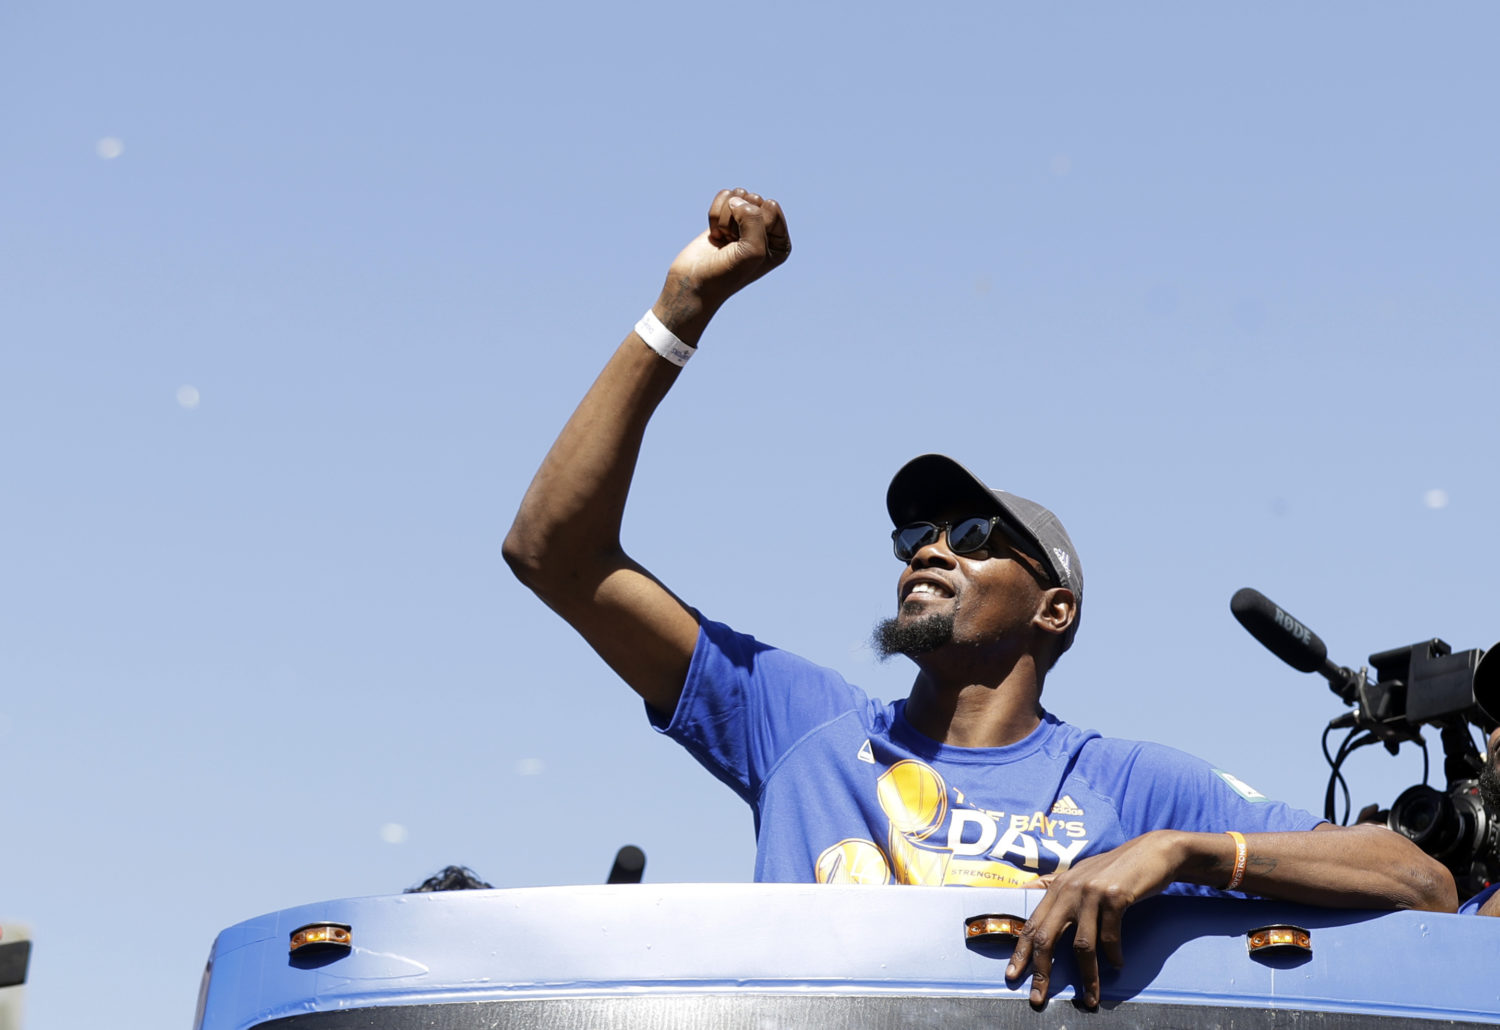 brand new dfaad 4aff6 Golden State Warriors star Kevin Durant celebrates during a parade and  rally in Oakland, California after winning the NBA basketball championship.